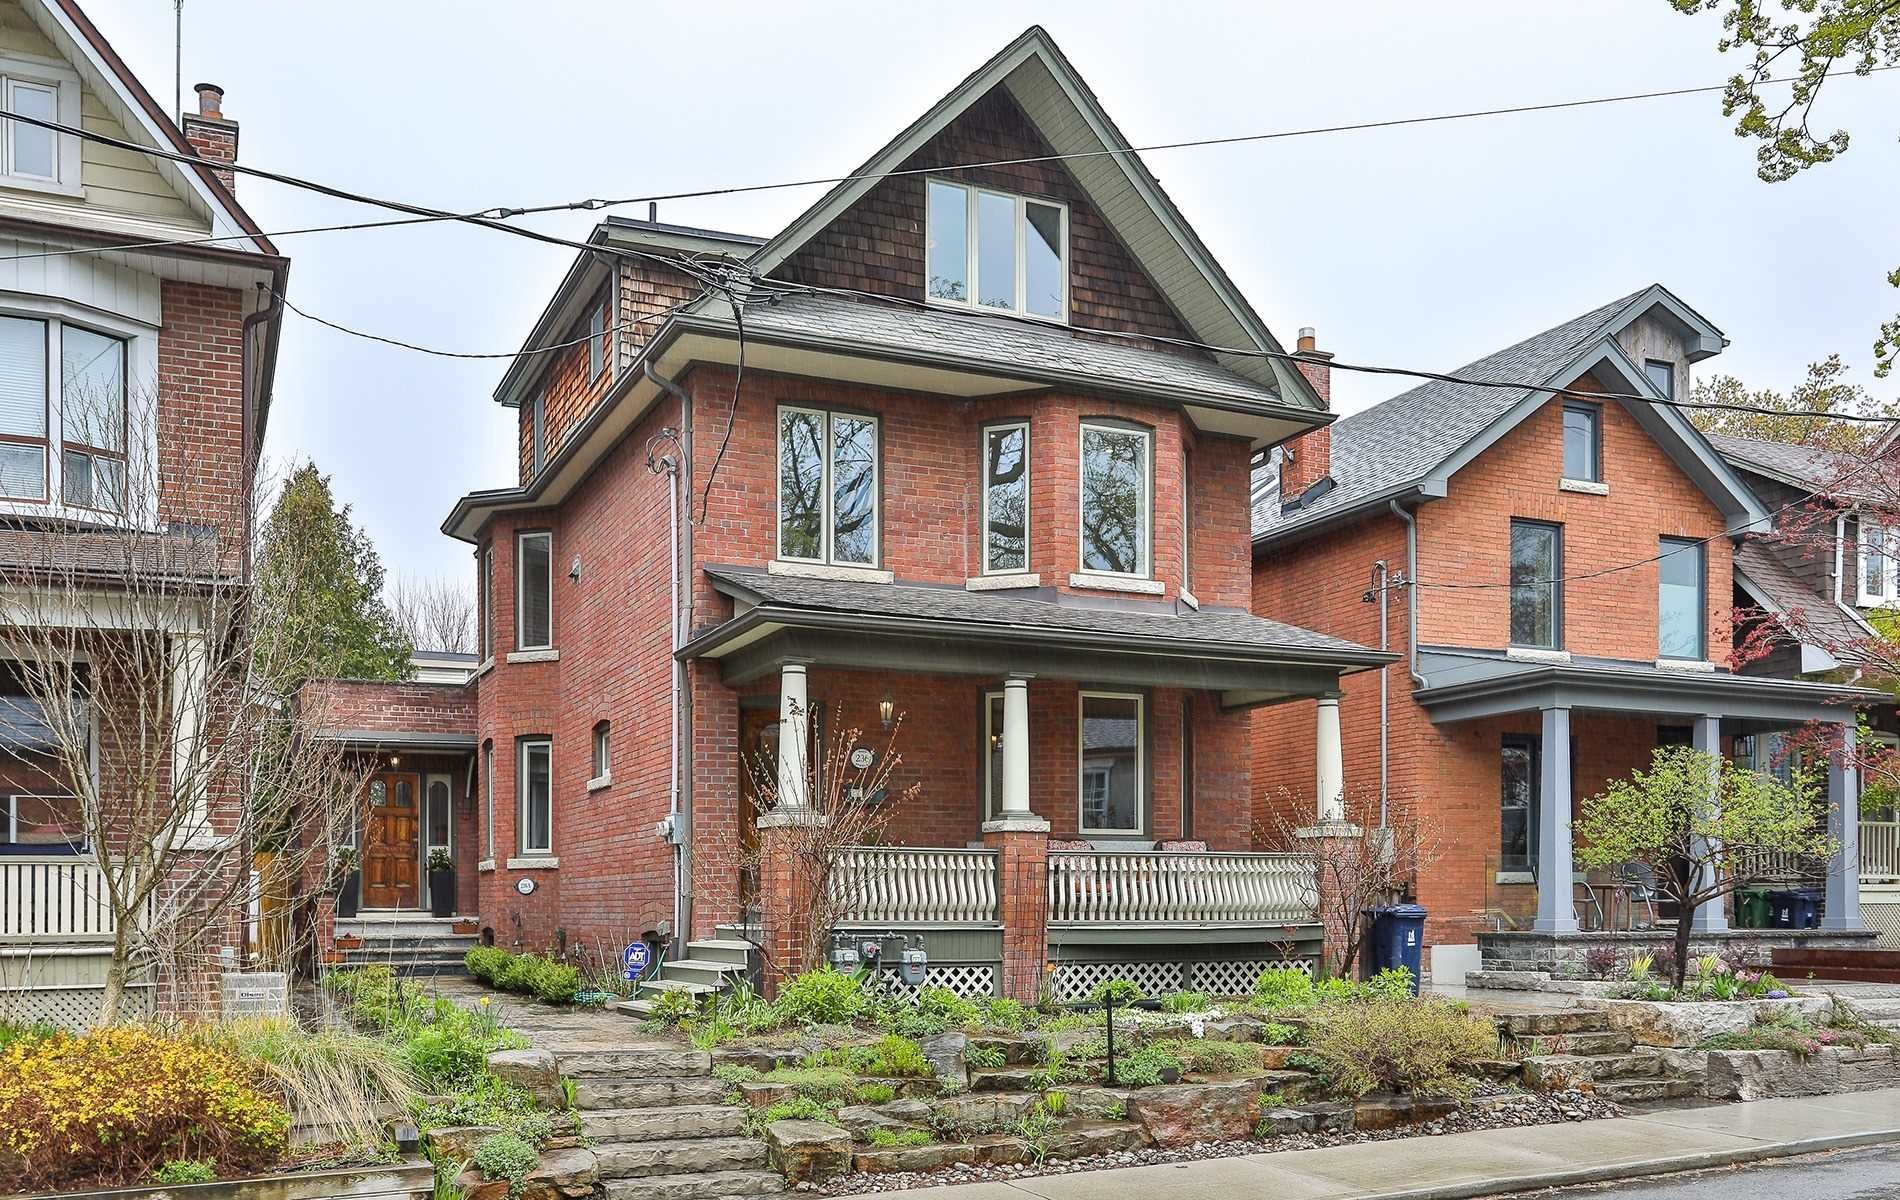 Main Photo: 236 Bain Avenue in Toronto: North Riverdale House (3-Storey) for sale (Toronto E01)  : MLS®# E4760020